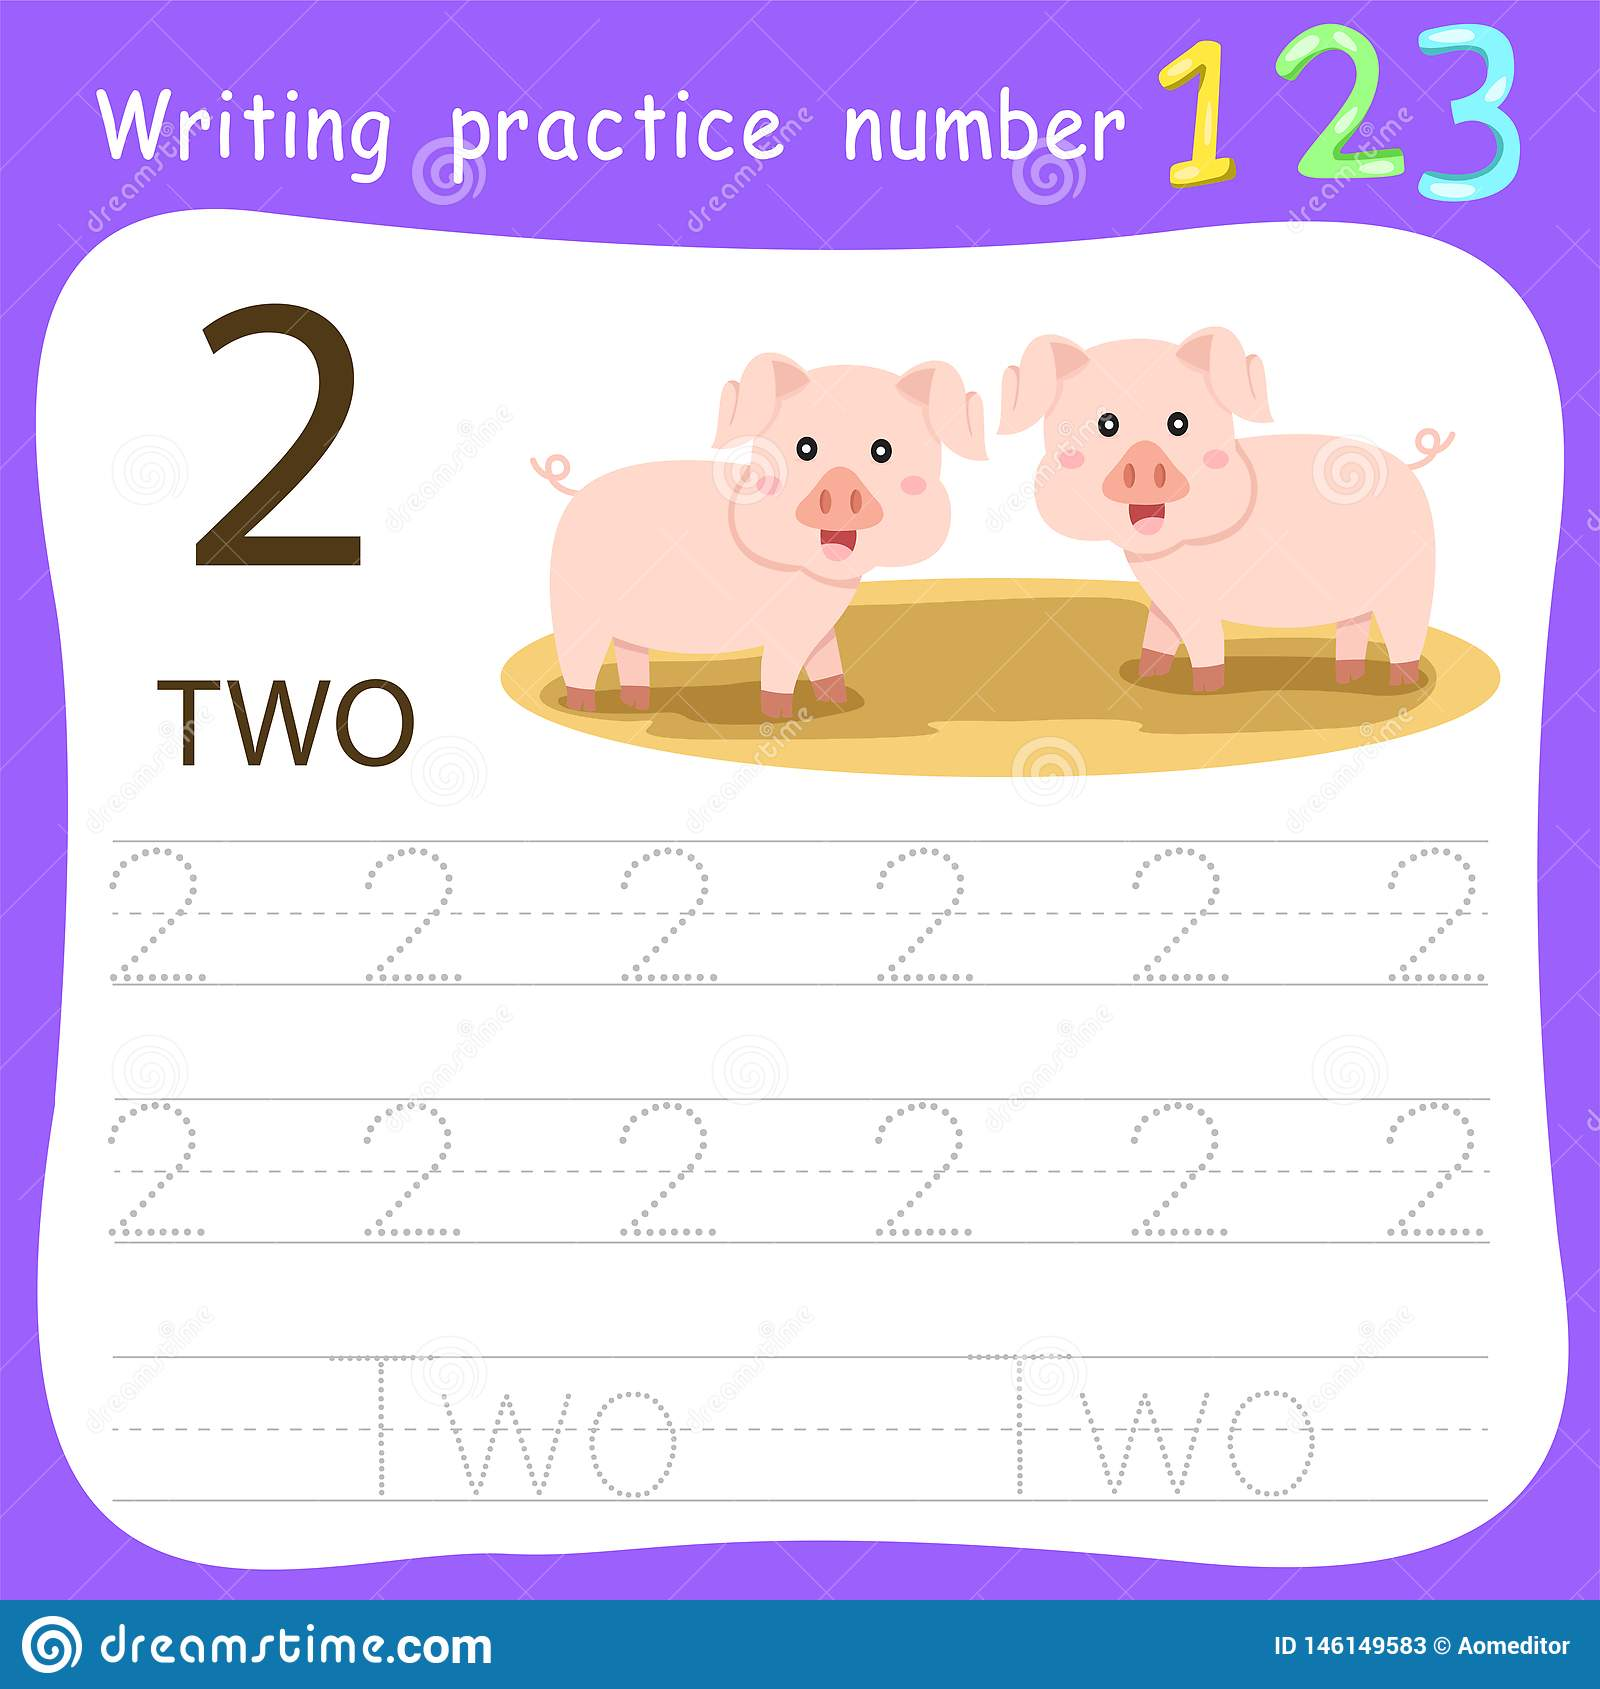 Illustrator Of Worksheet Writing Practice Number Two Stock